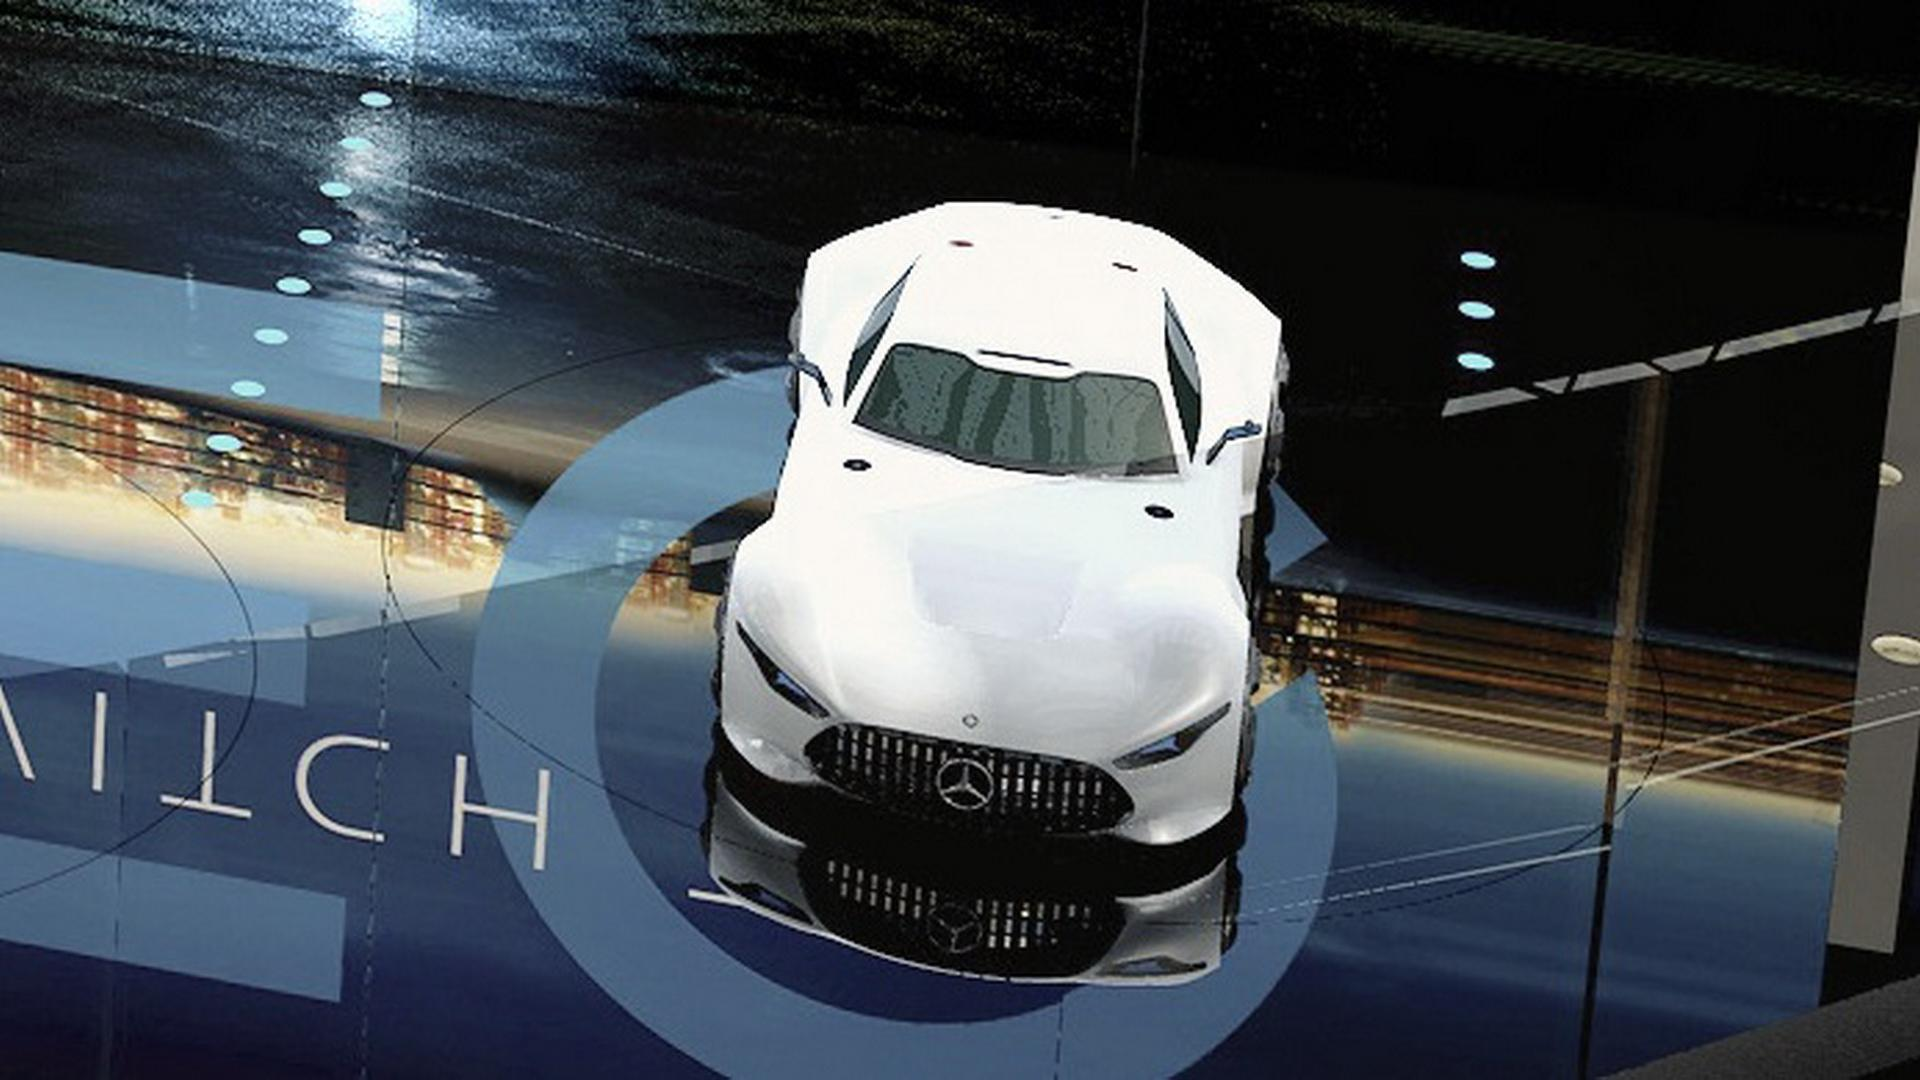 https://icdn-1.motor1.com/images/mgl/mJAOq/s1/mercedes-amg-project-one-concept-from-frankfurt-motor-show-stand.jpg